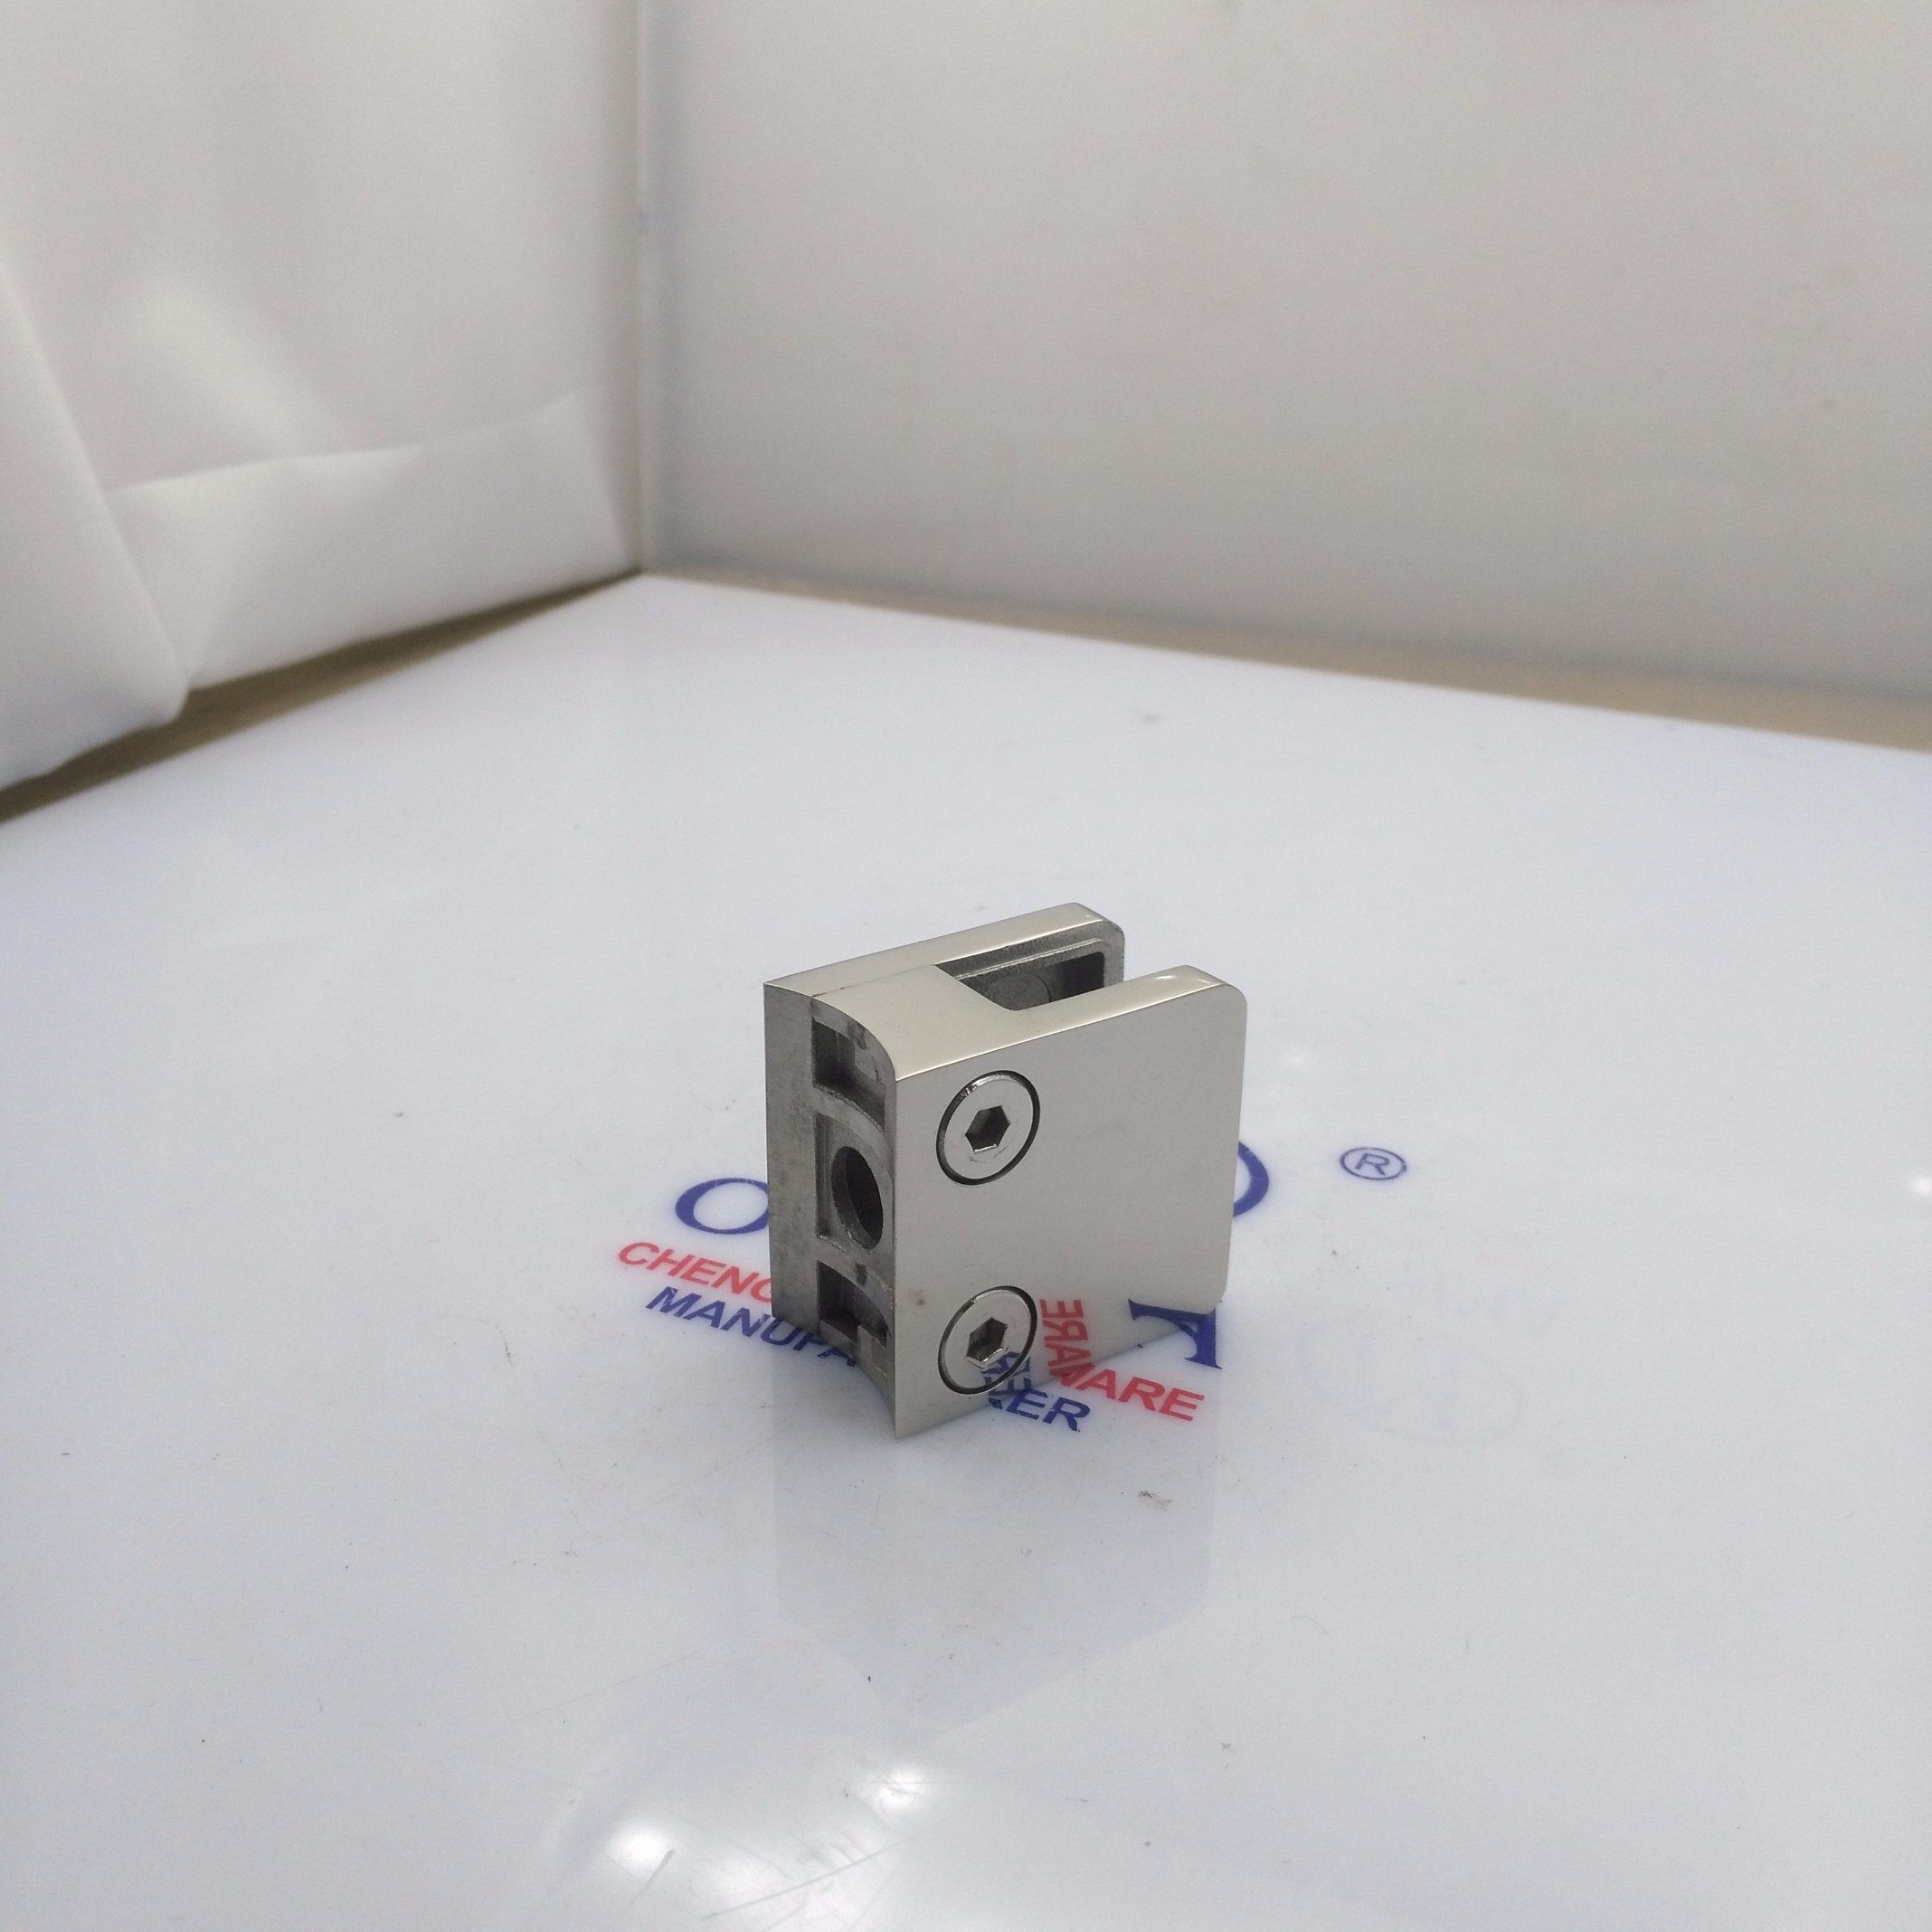 Stainless Steel Die Casting Glass Clamp for Handrail System (CR-052)